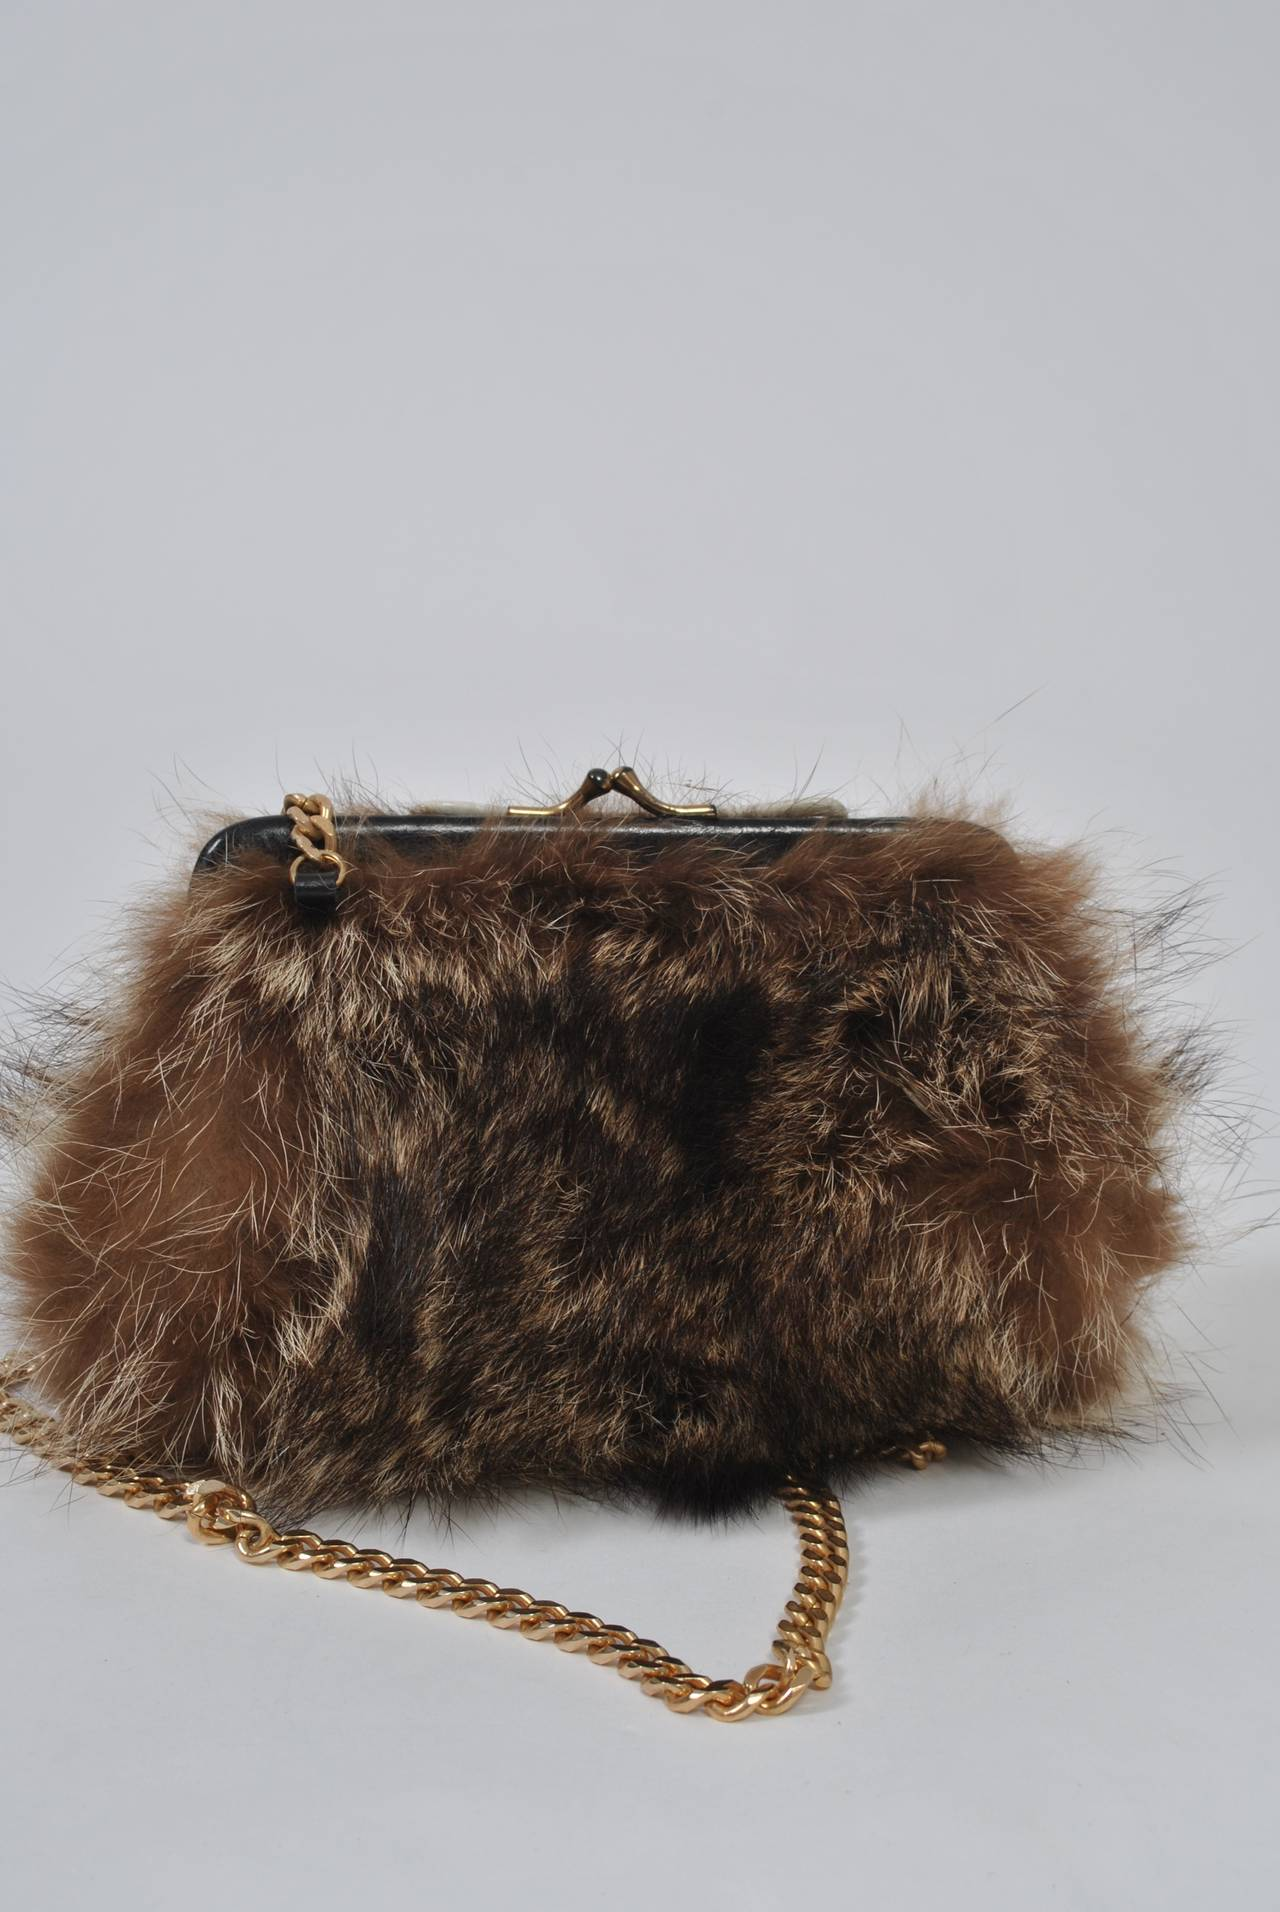 "Small shoulder bag in fur, probably raccoon, with black leather frame and long gold chain. Black interior. Unmarked. Chain length: 37""."